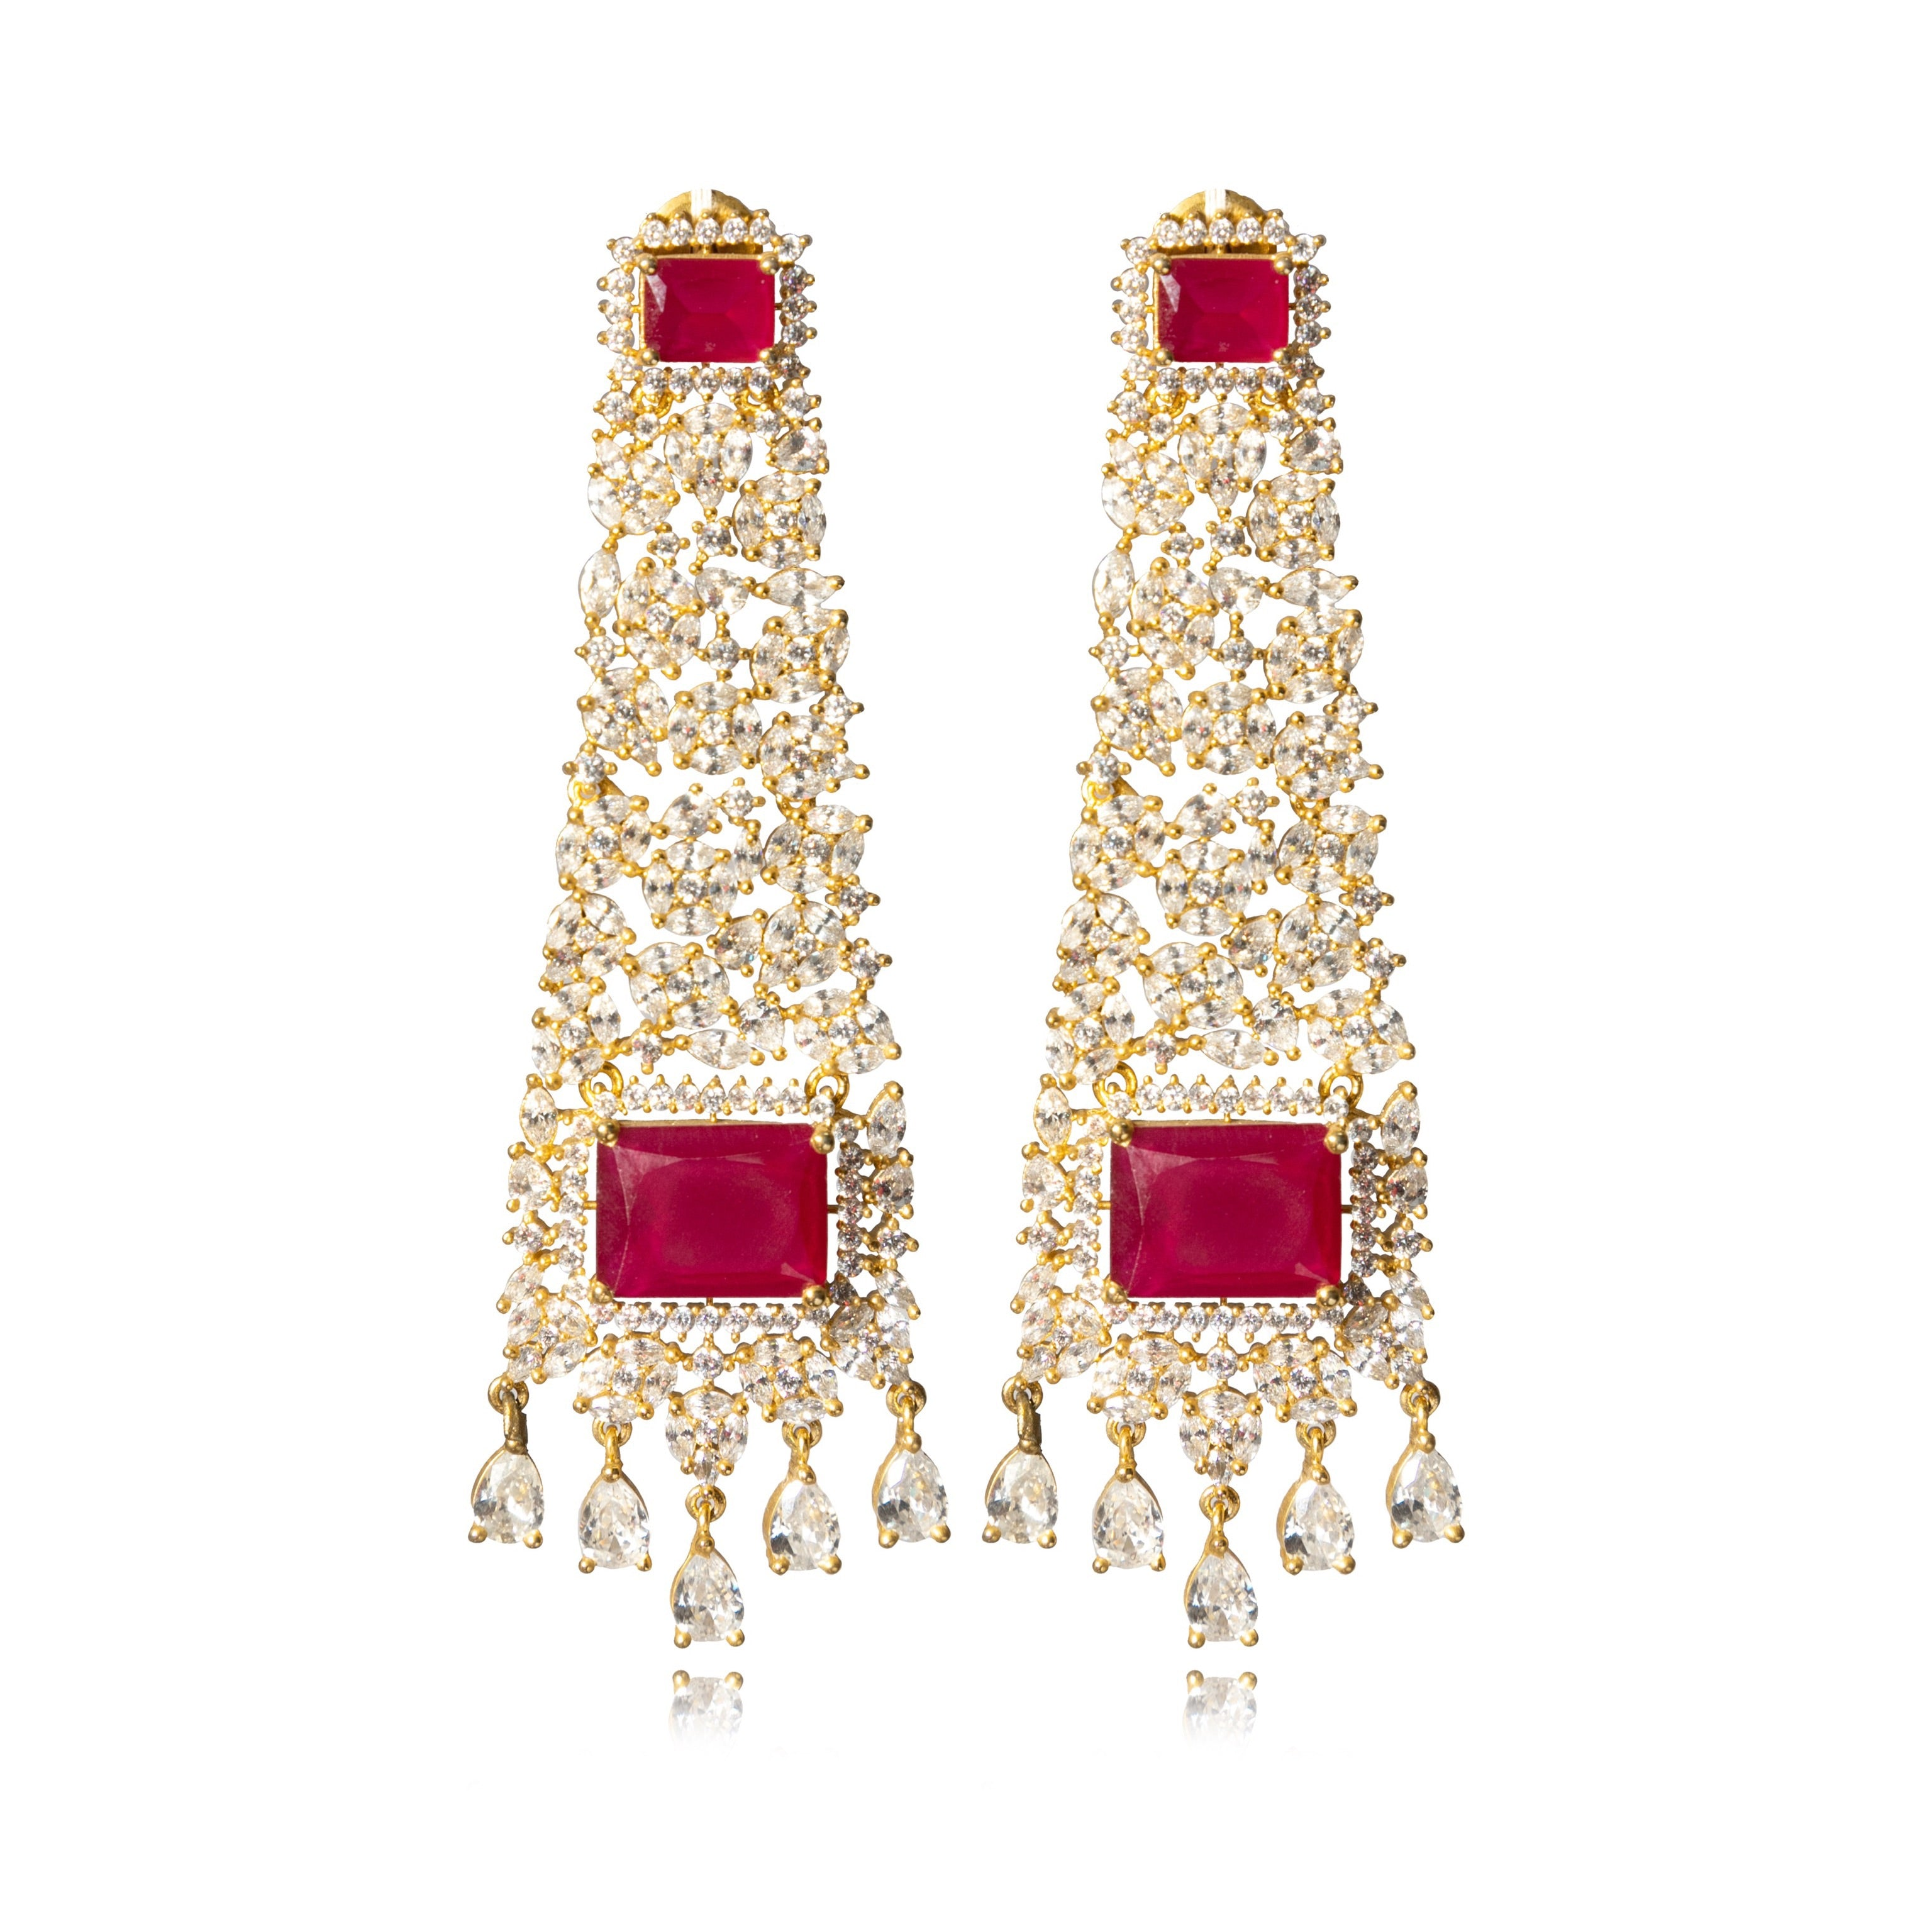 CHANDELIER STYLED RUBY EARRINGS